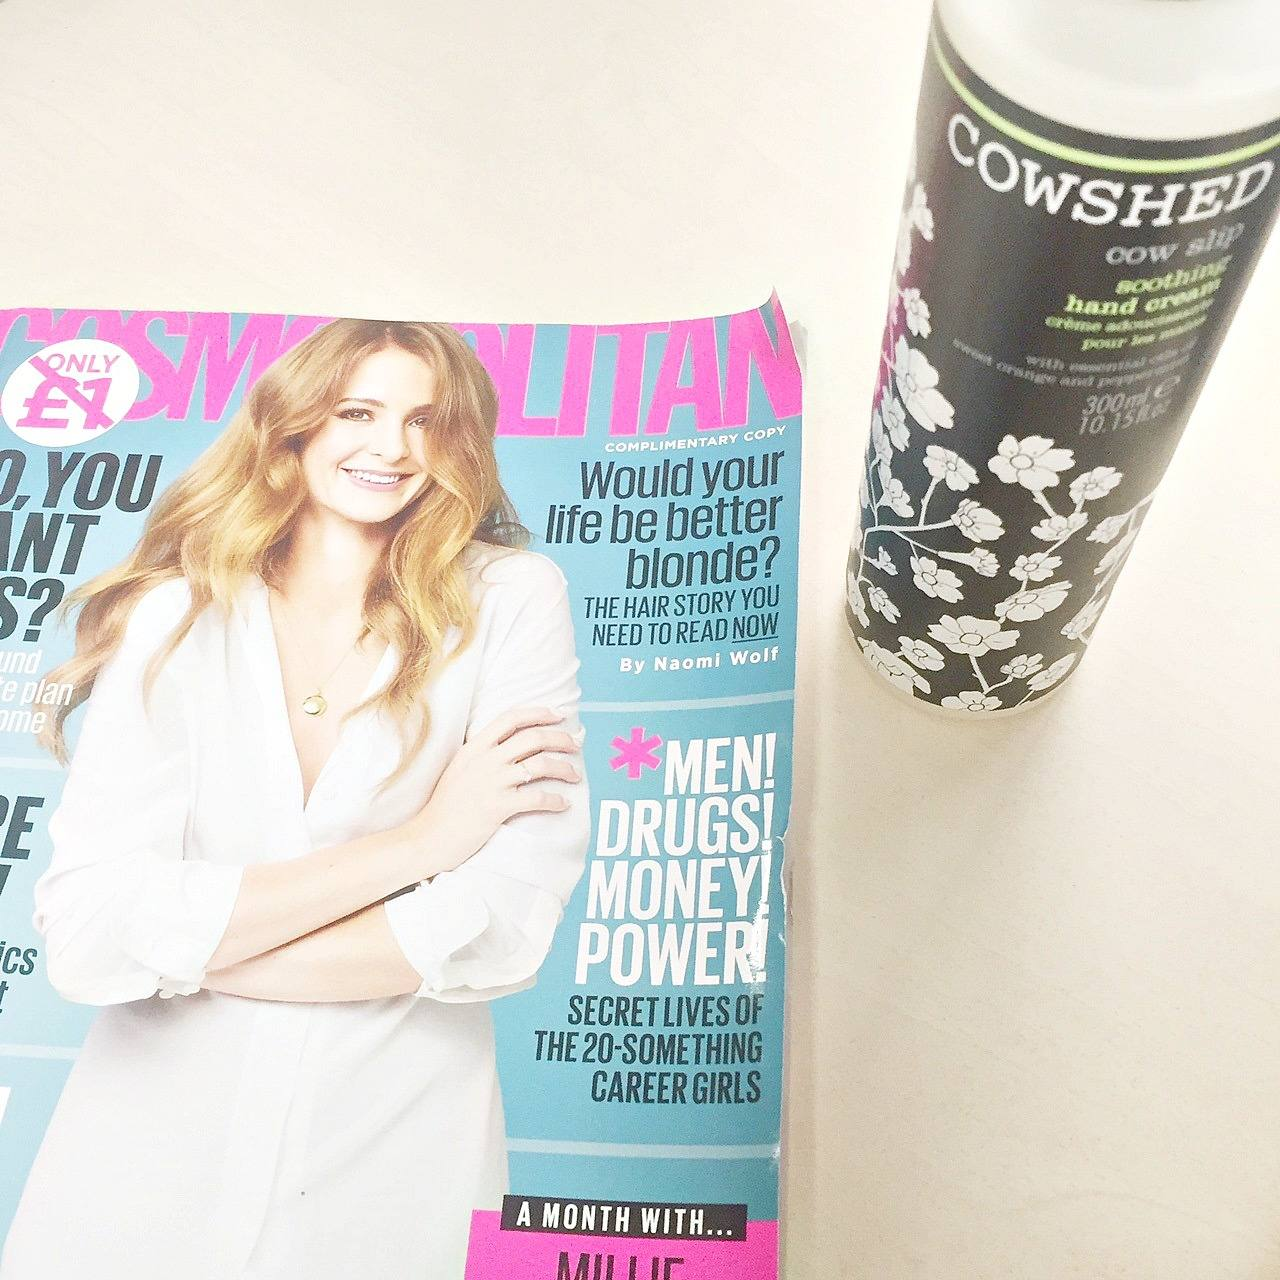 Cosmopolitan and Cowshed